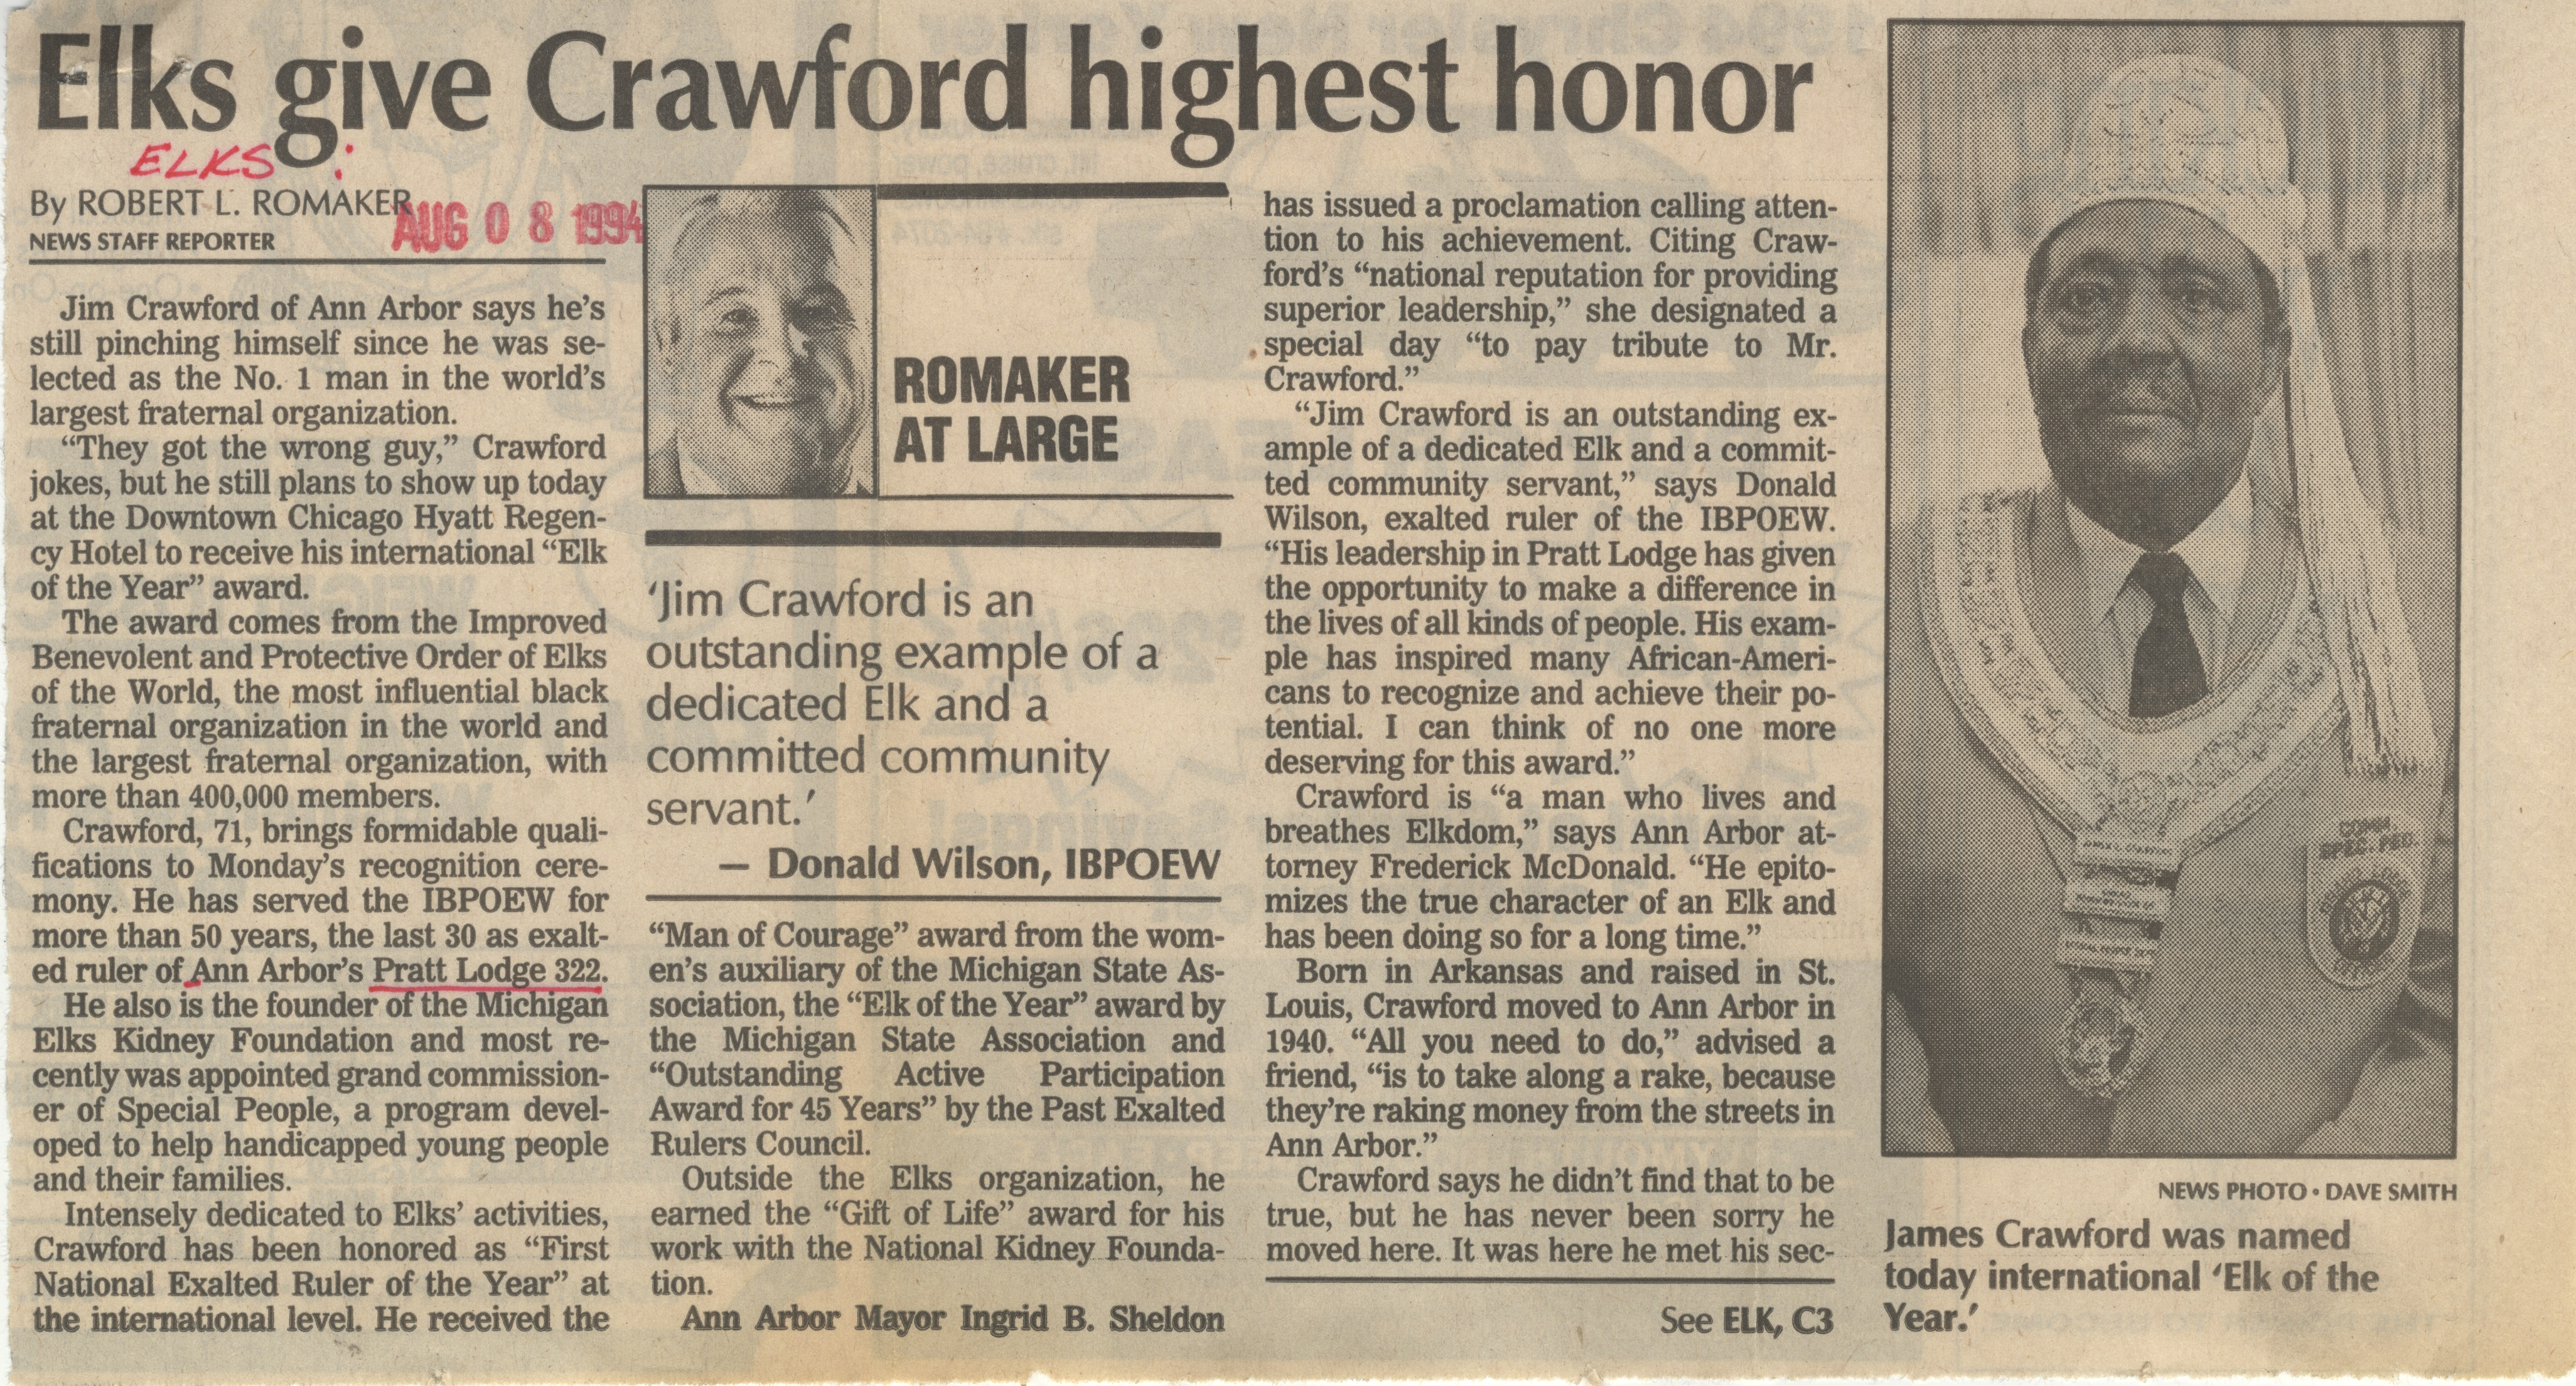 Elks Give Crawford Highest Honor image